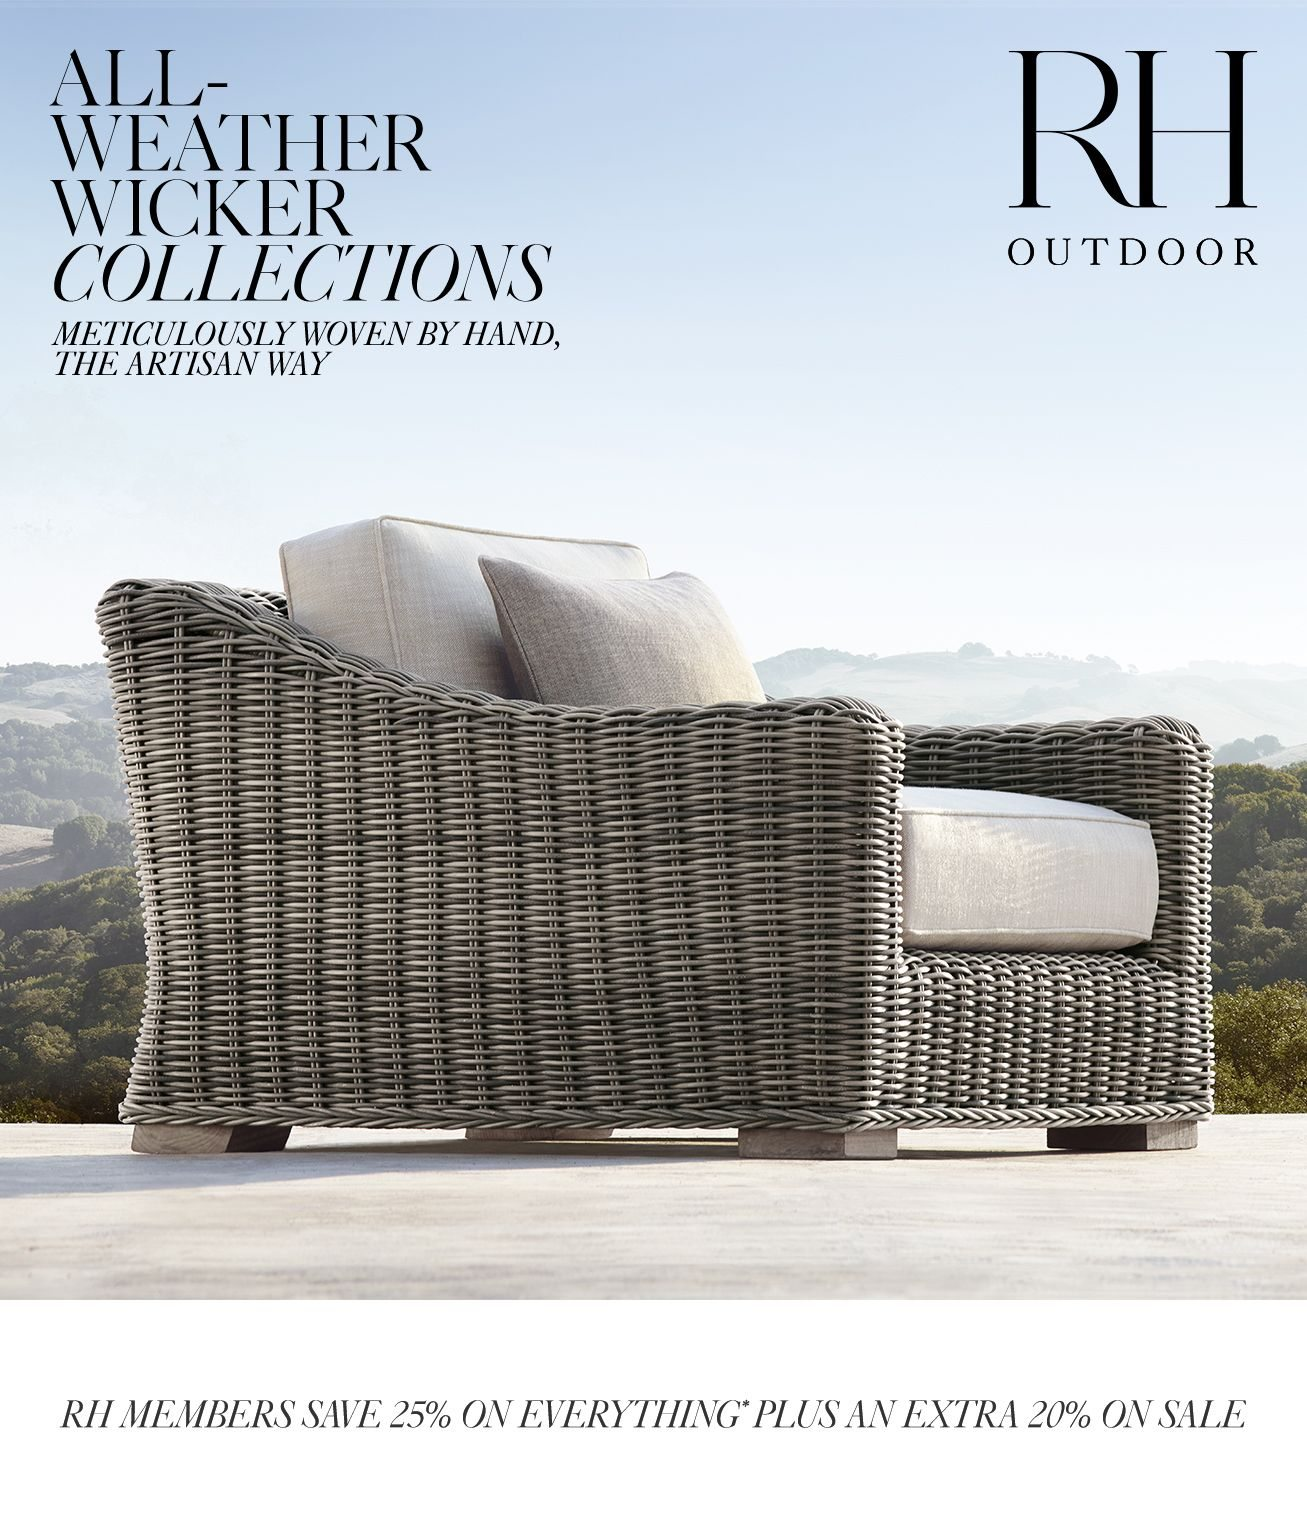 Awe Inspiring All Weather Wicker Outdoor Collections Rh Email Archive Download Free Architecture Designs Scobabritishbridgeorg